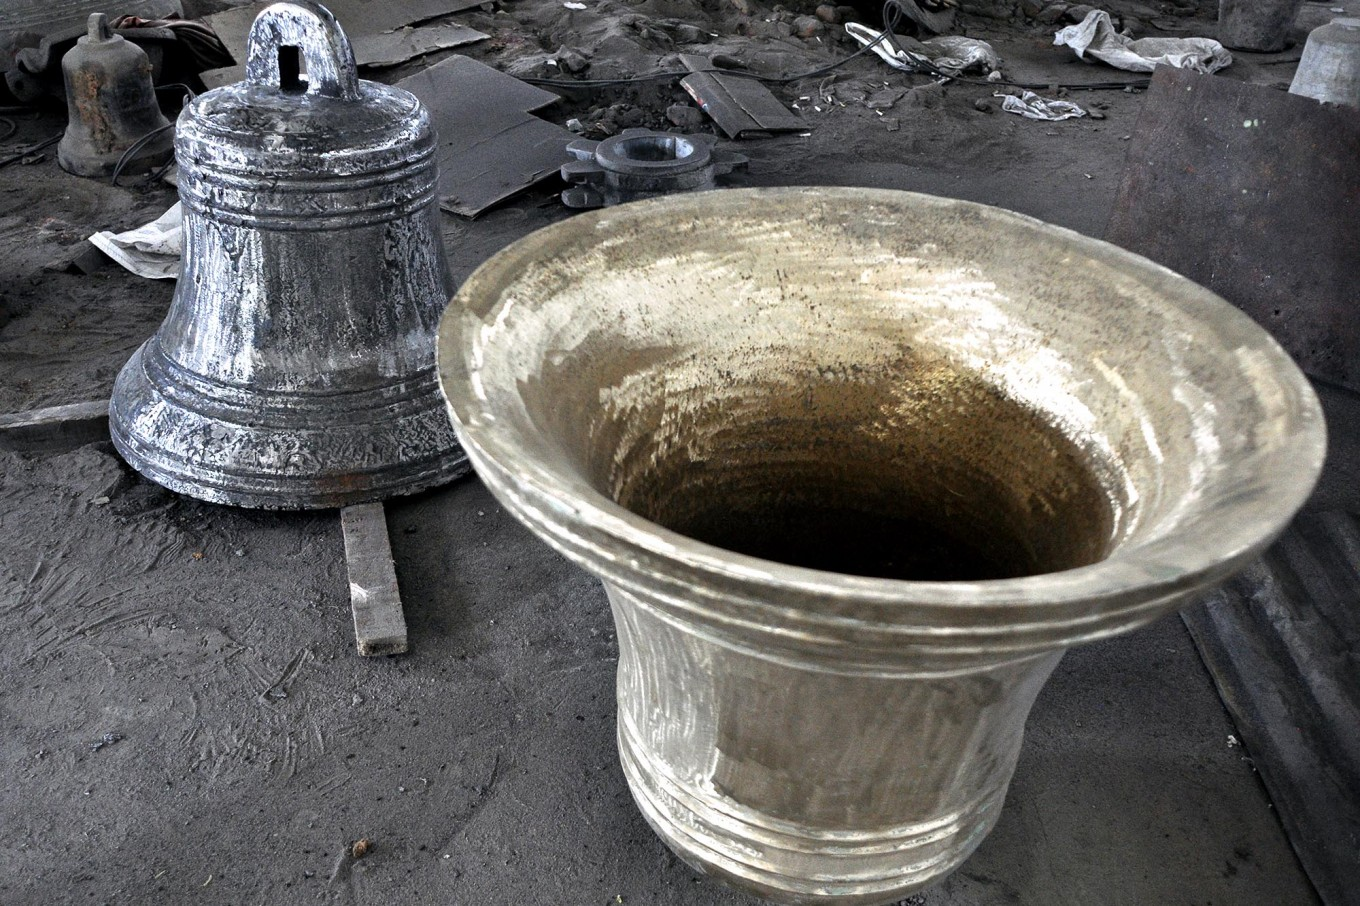 A bronze church bell 67 cm in diameter is finished being polished and is ready for the next step.  JP/Magnus Hendratmo